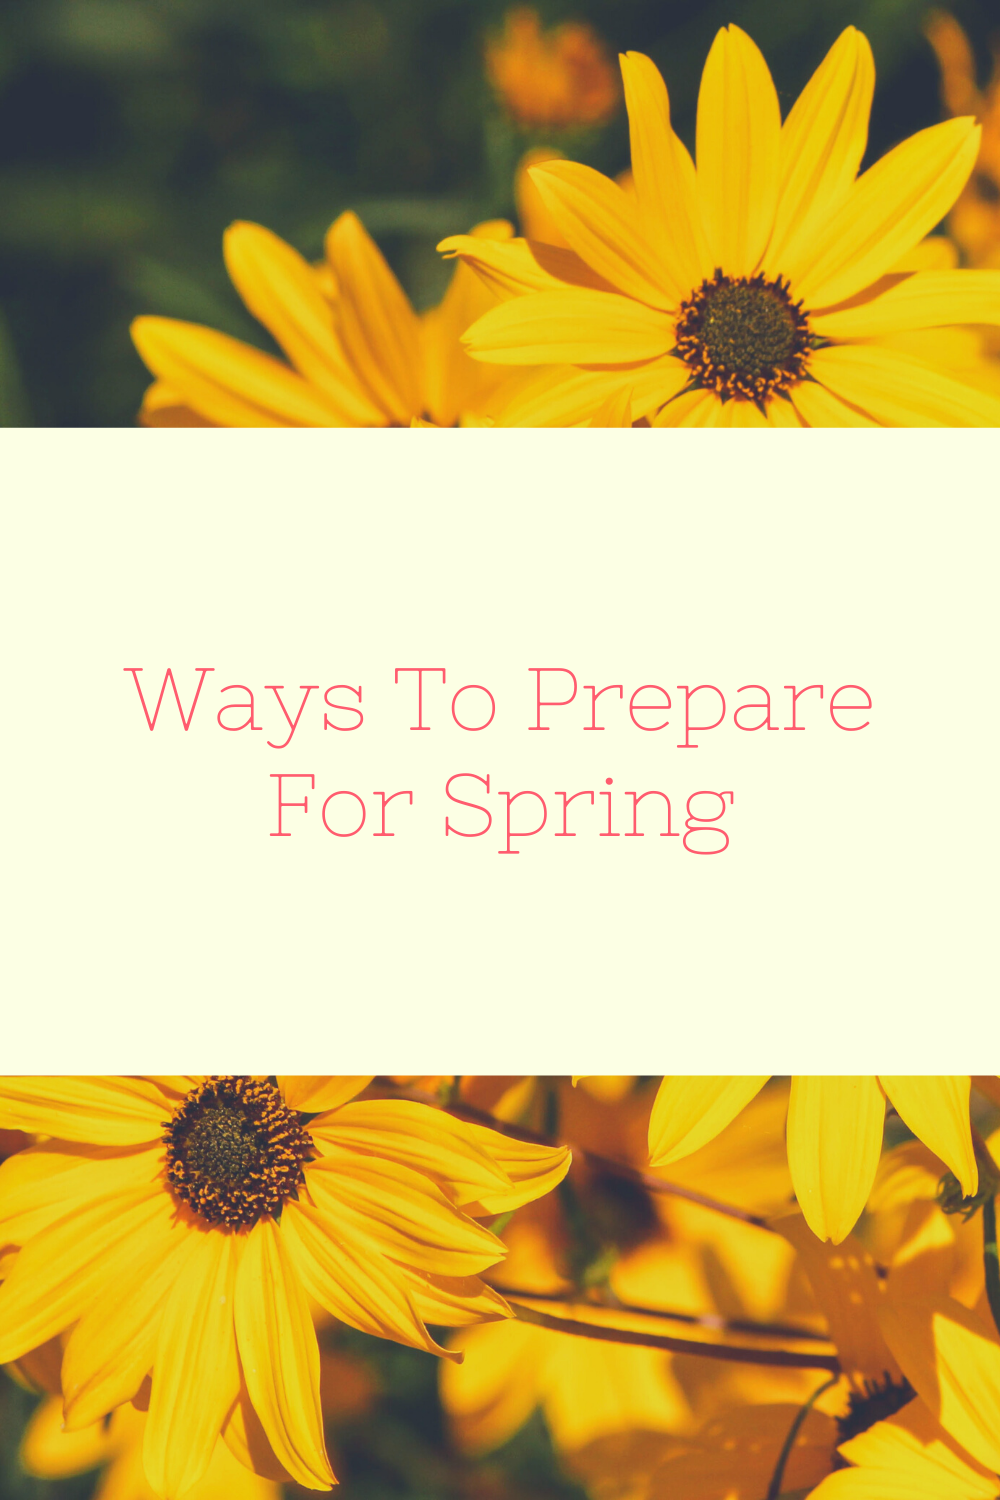 Ways To Prepare For Spring. Start preparing for when the sunny days start showing, you're completely ready for the beauty of the season.